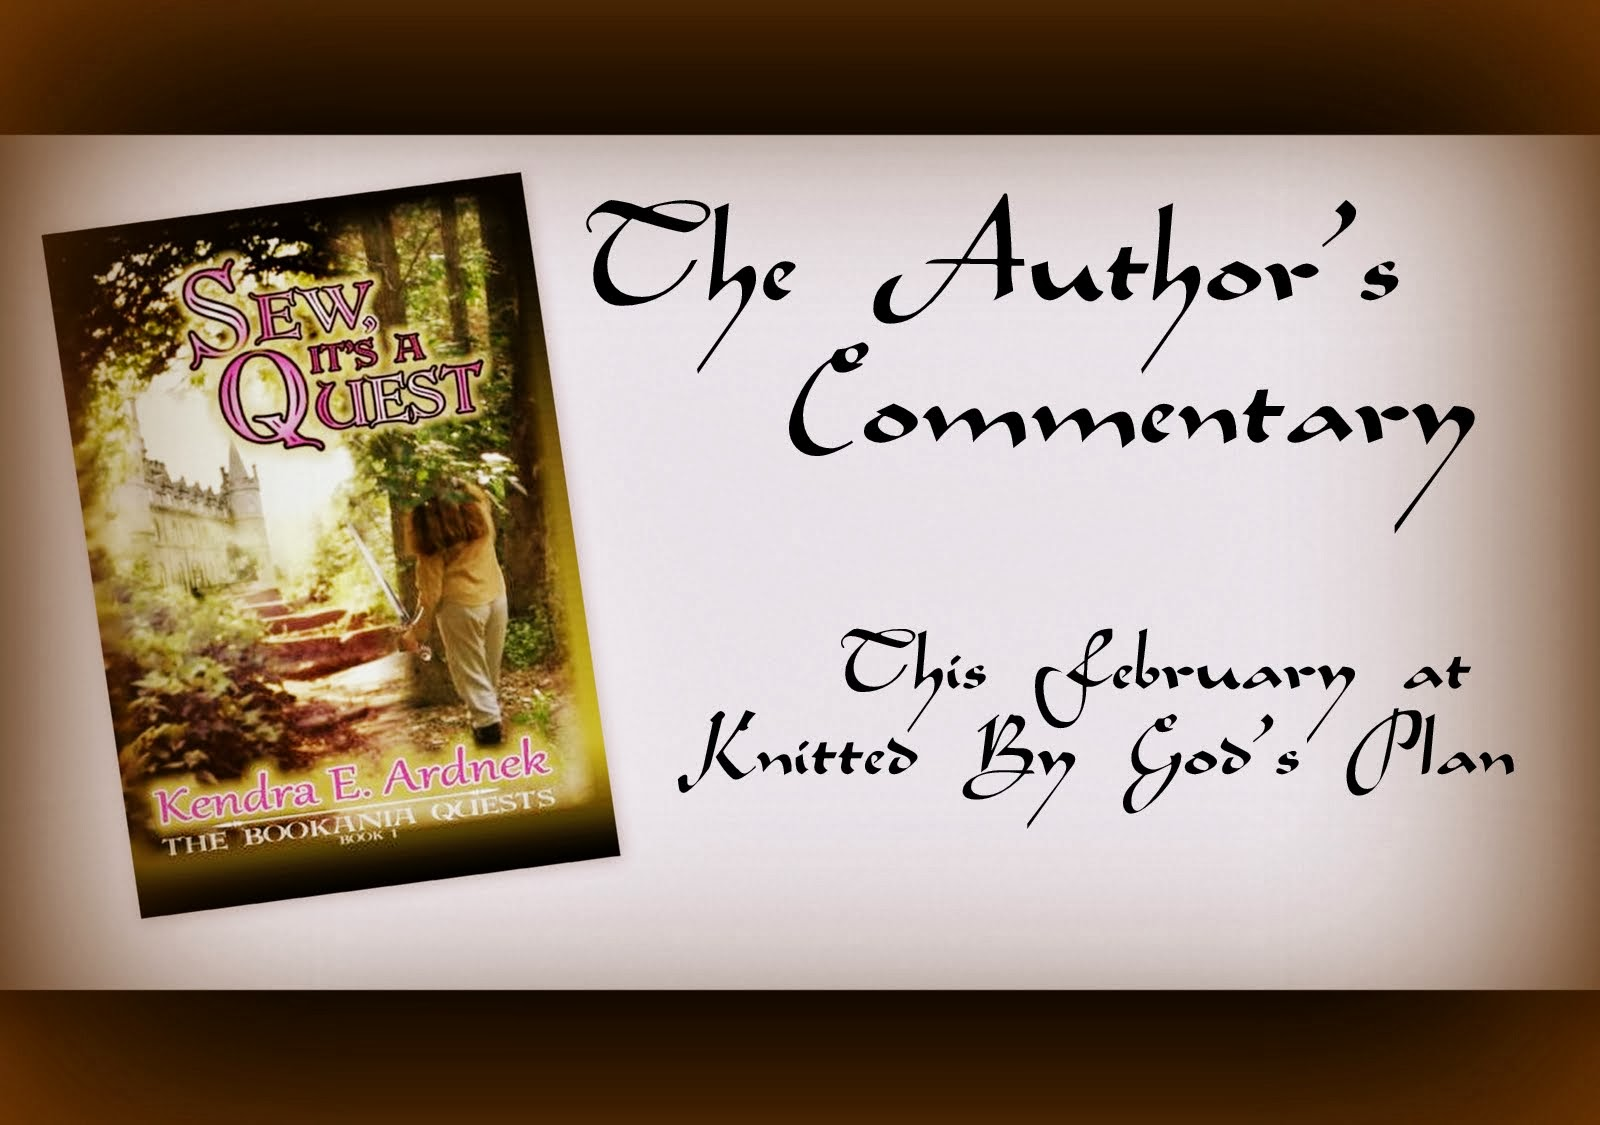 http://knittedbygodsplan.blogspot.com/2014/01/the-authors-commentary-announcement.html